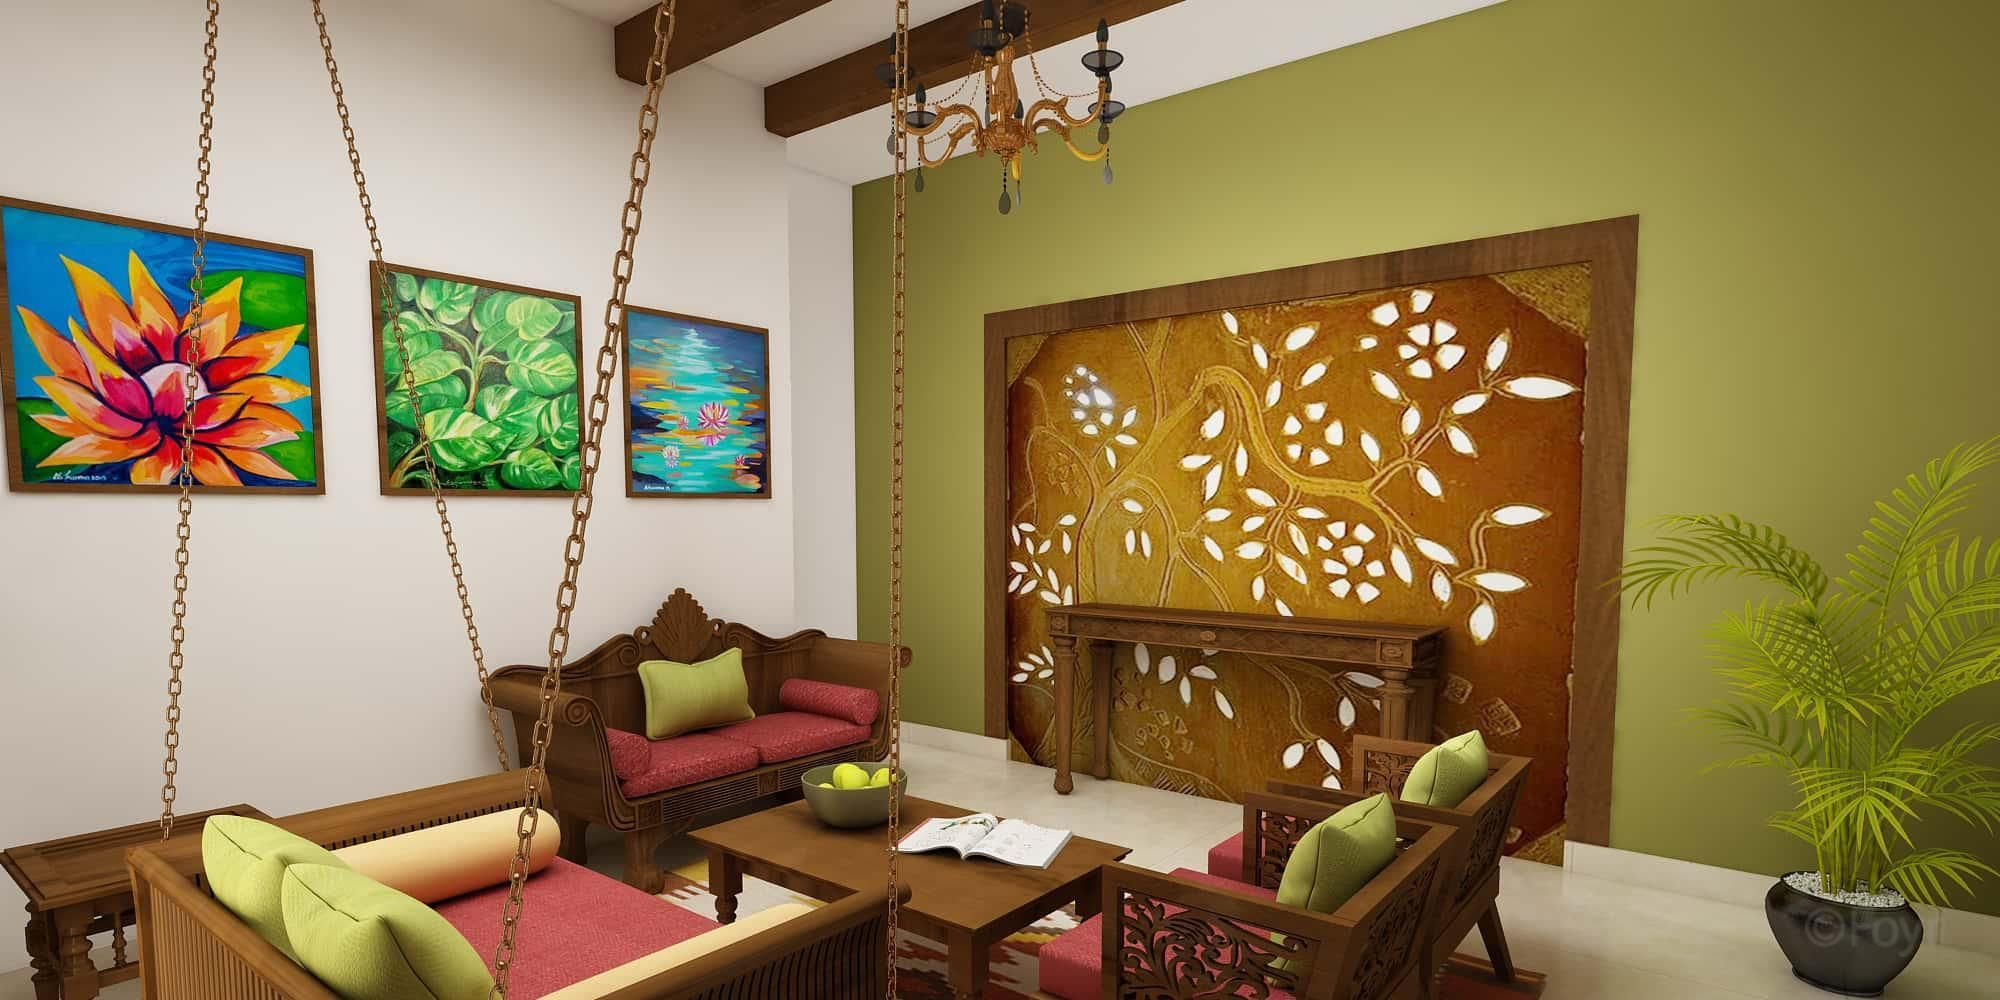 20+ Amazing Living Room Designs Indian Style, Interior Design and ...